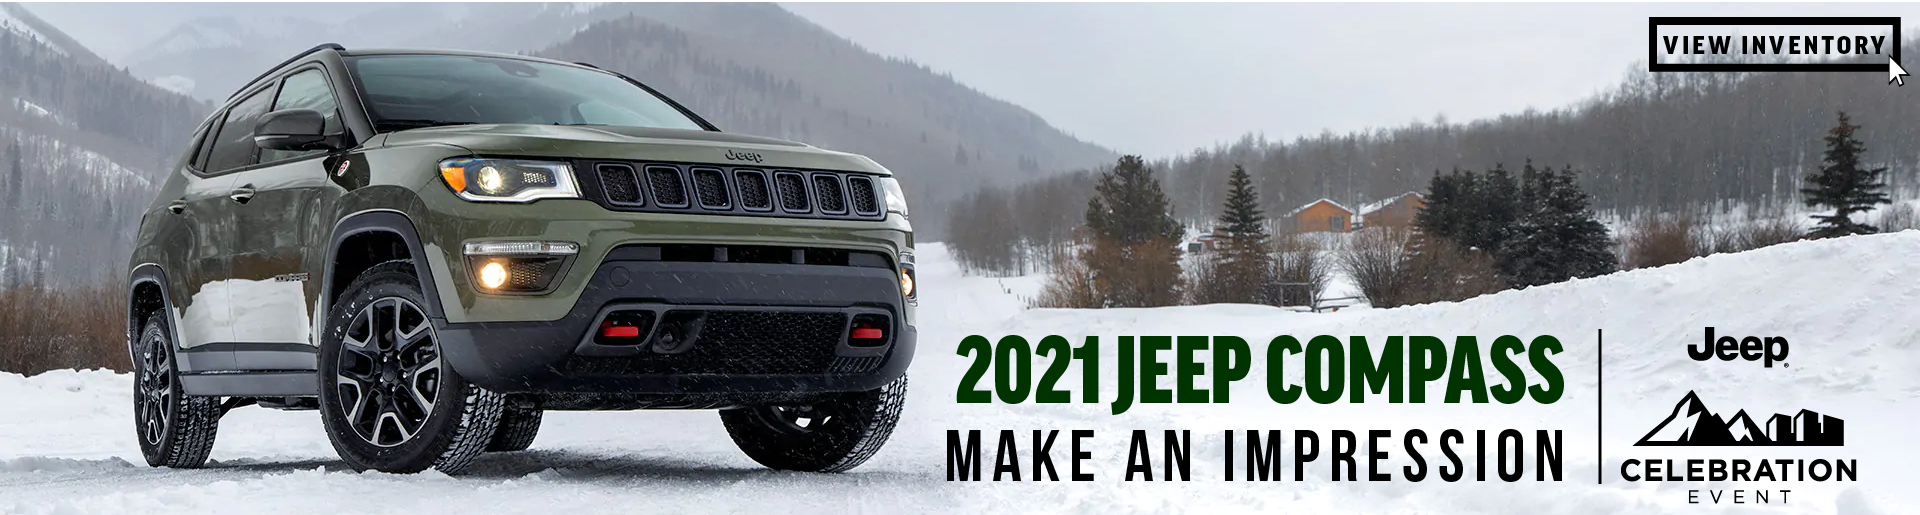 2021 Jeep Compass Generic